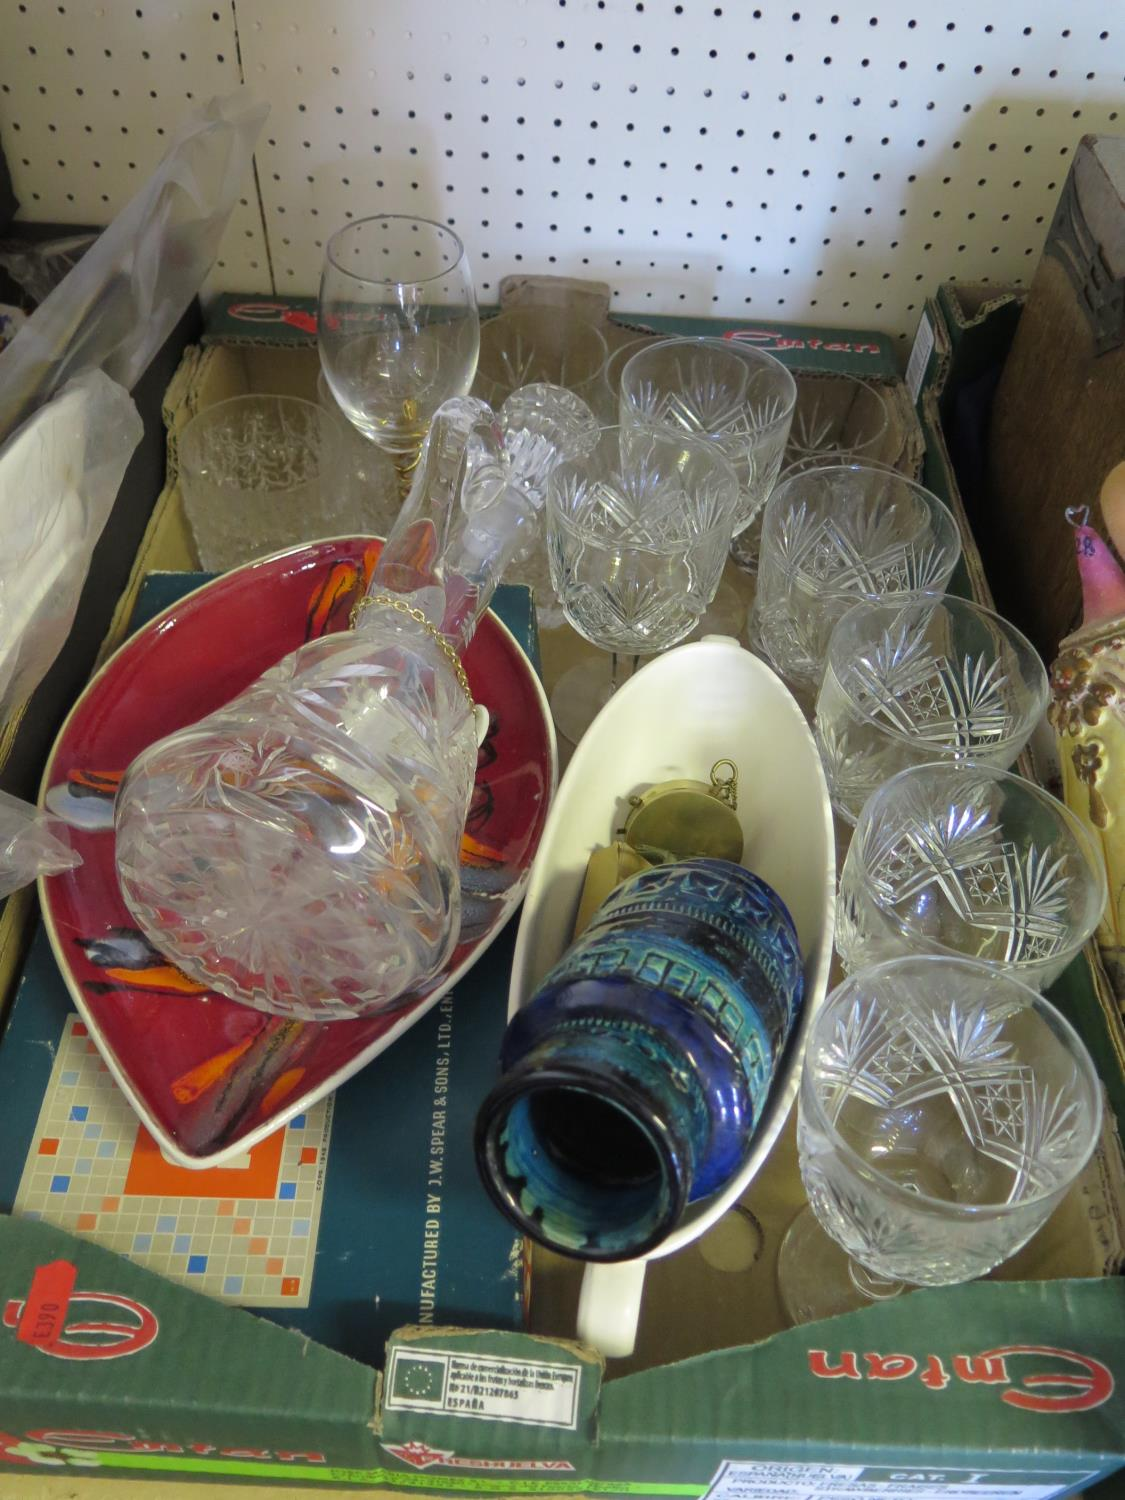 Lot 541 - A Poole Delphis Range Shaped Dish, glass including crystal decanter, Scrabble etc.